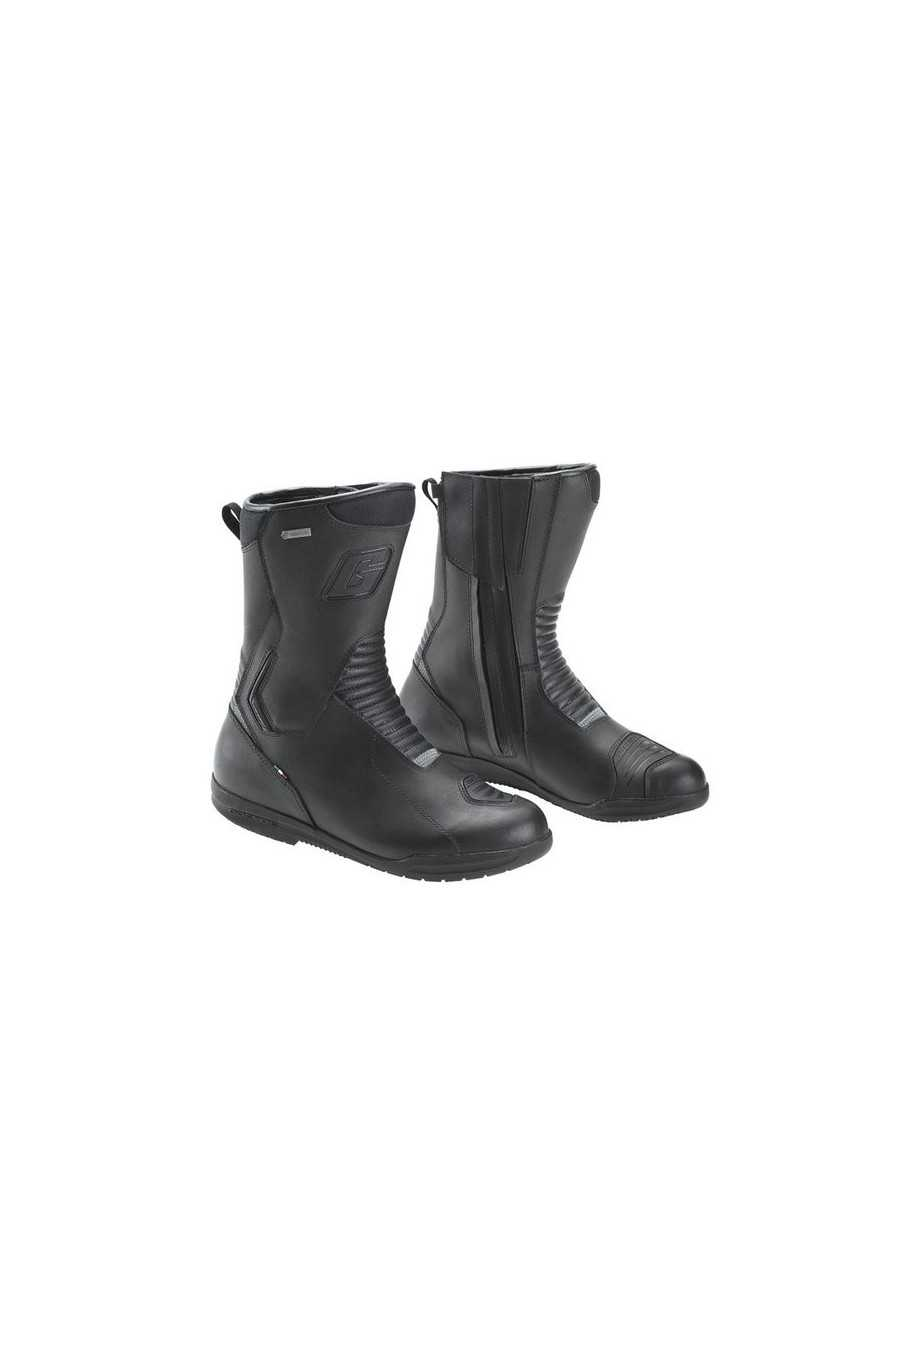 Forma Valley Sa Touring Motorcycle Boots AlexFactory